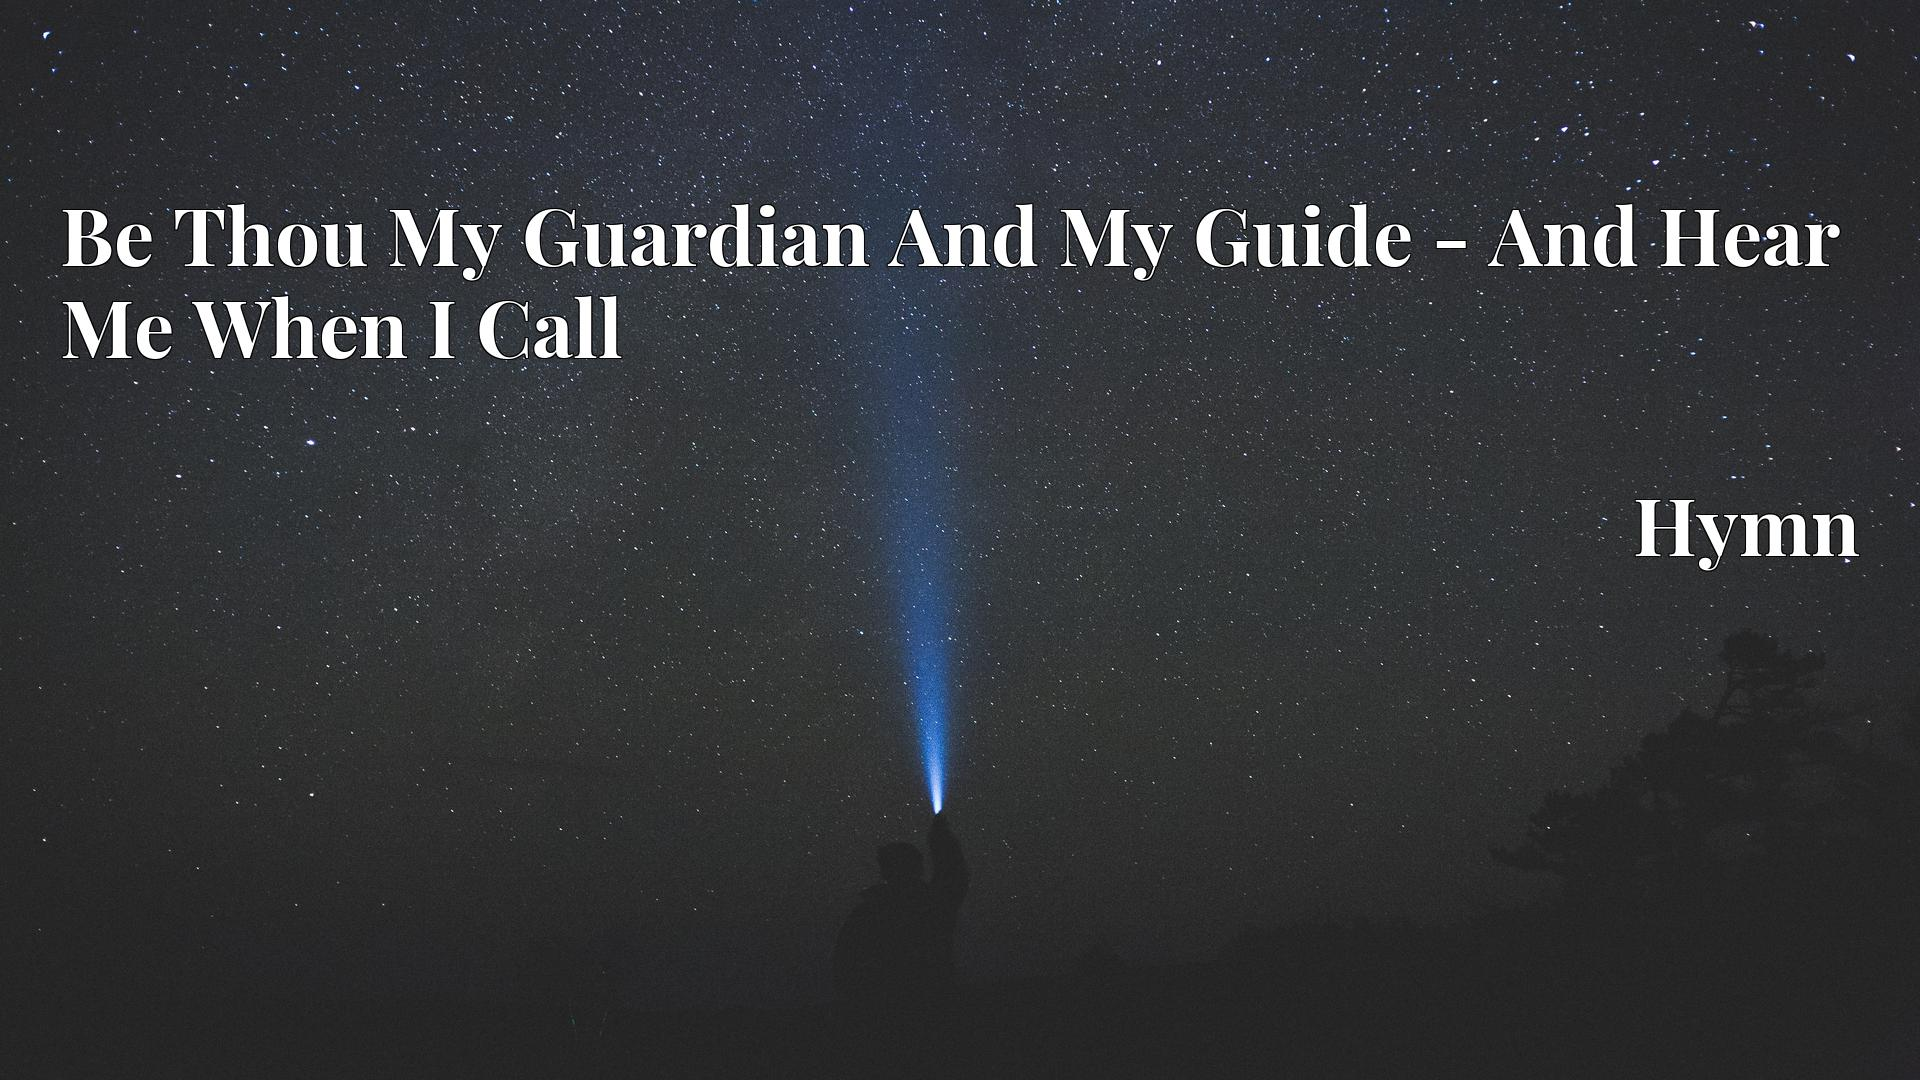 Be Thou My Guardian And My Guide - And Hear Me When I Call Hymn